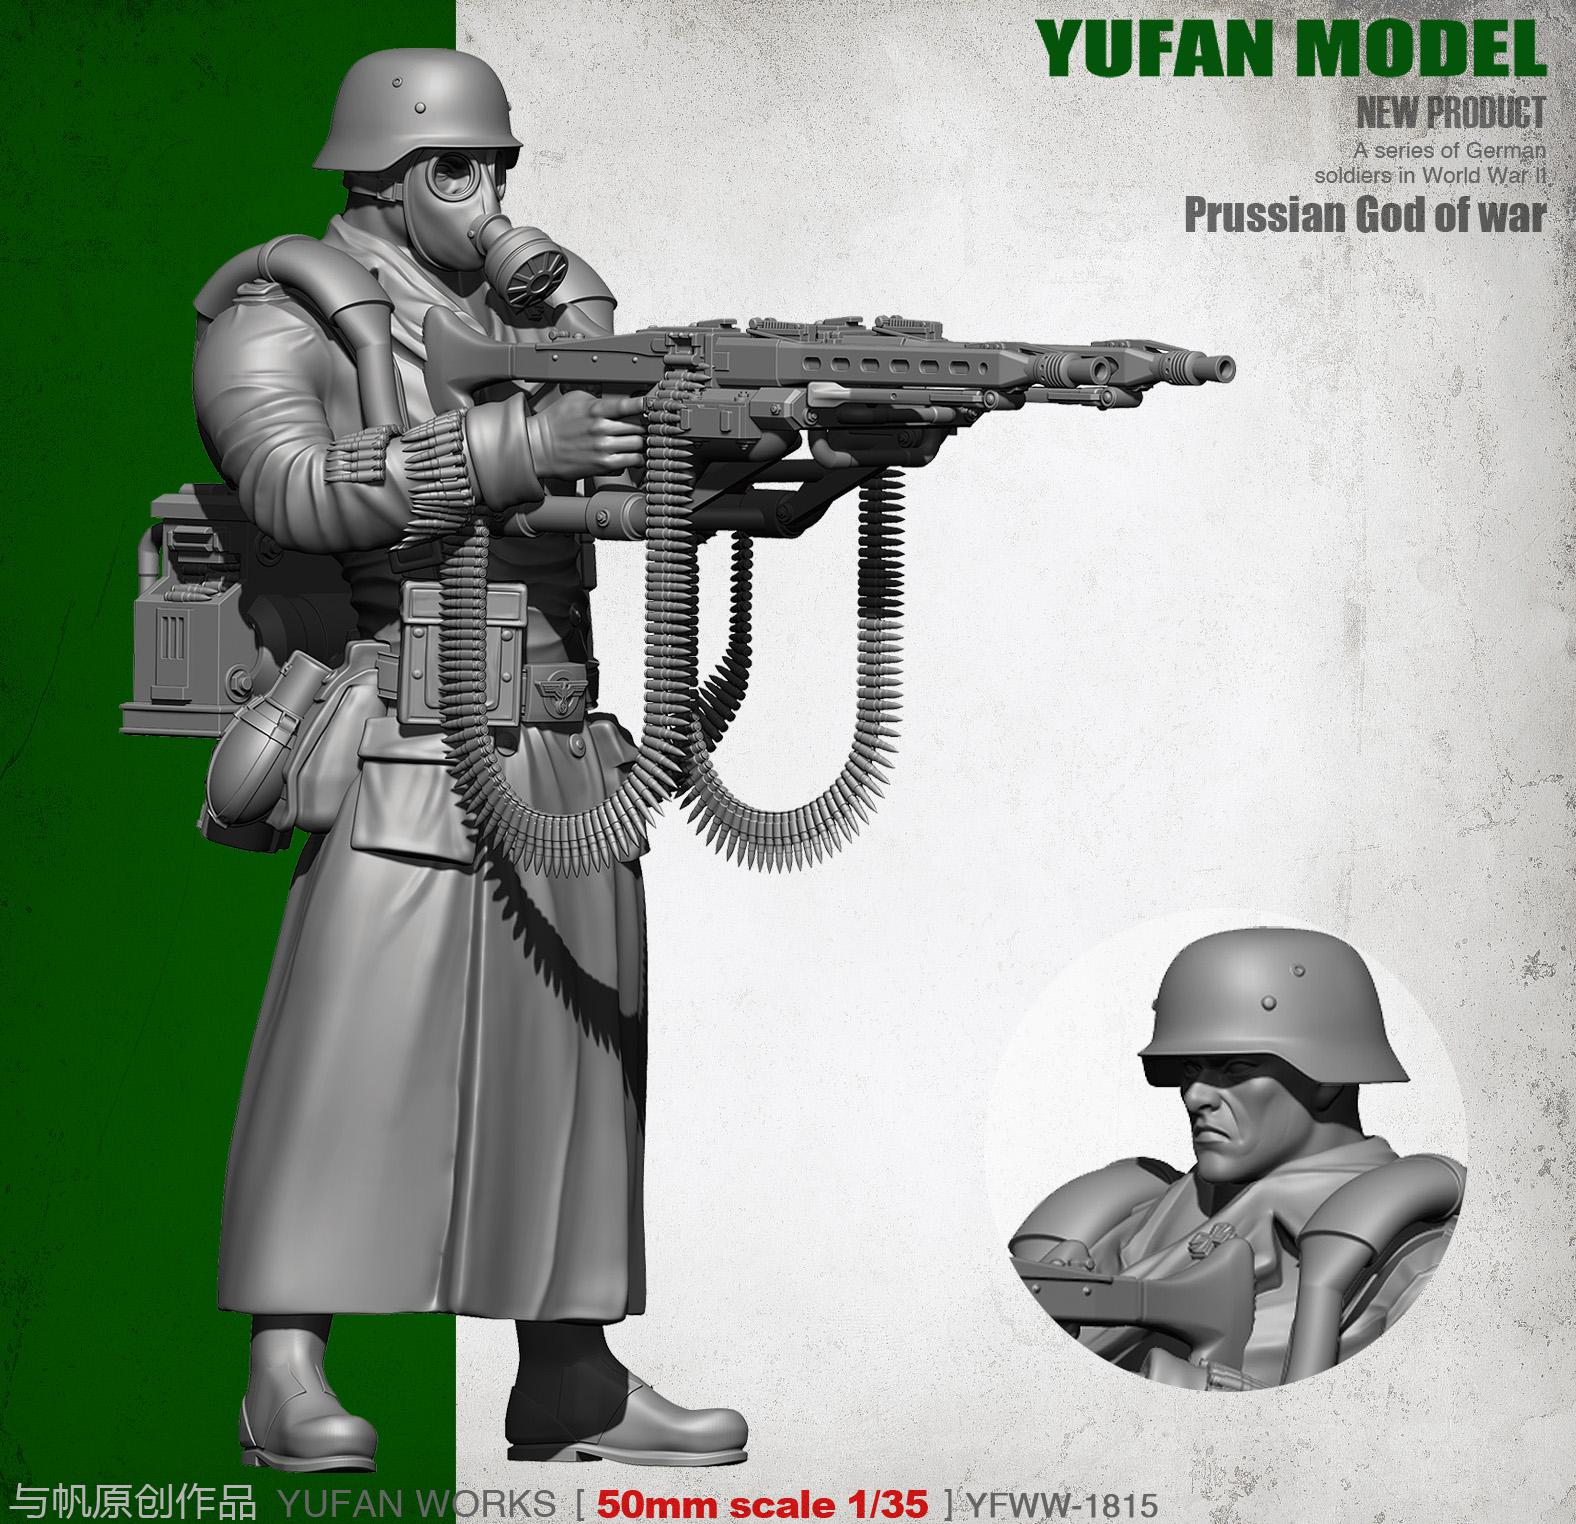 Yufan Model 1/35 German Figure Super Double Gun Resin Soldier YFWW35-1815